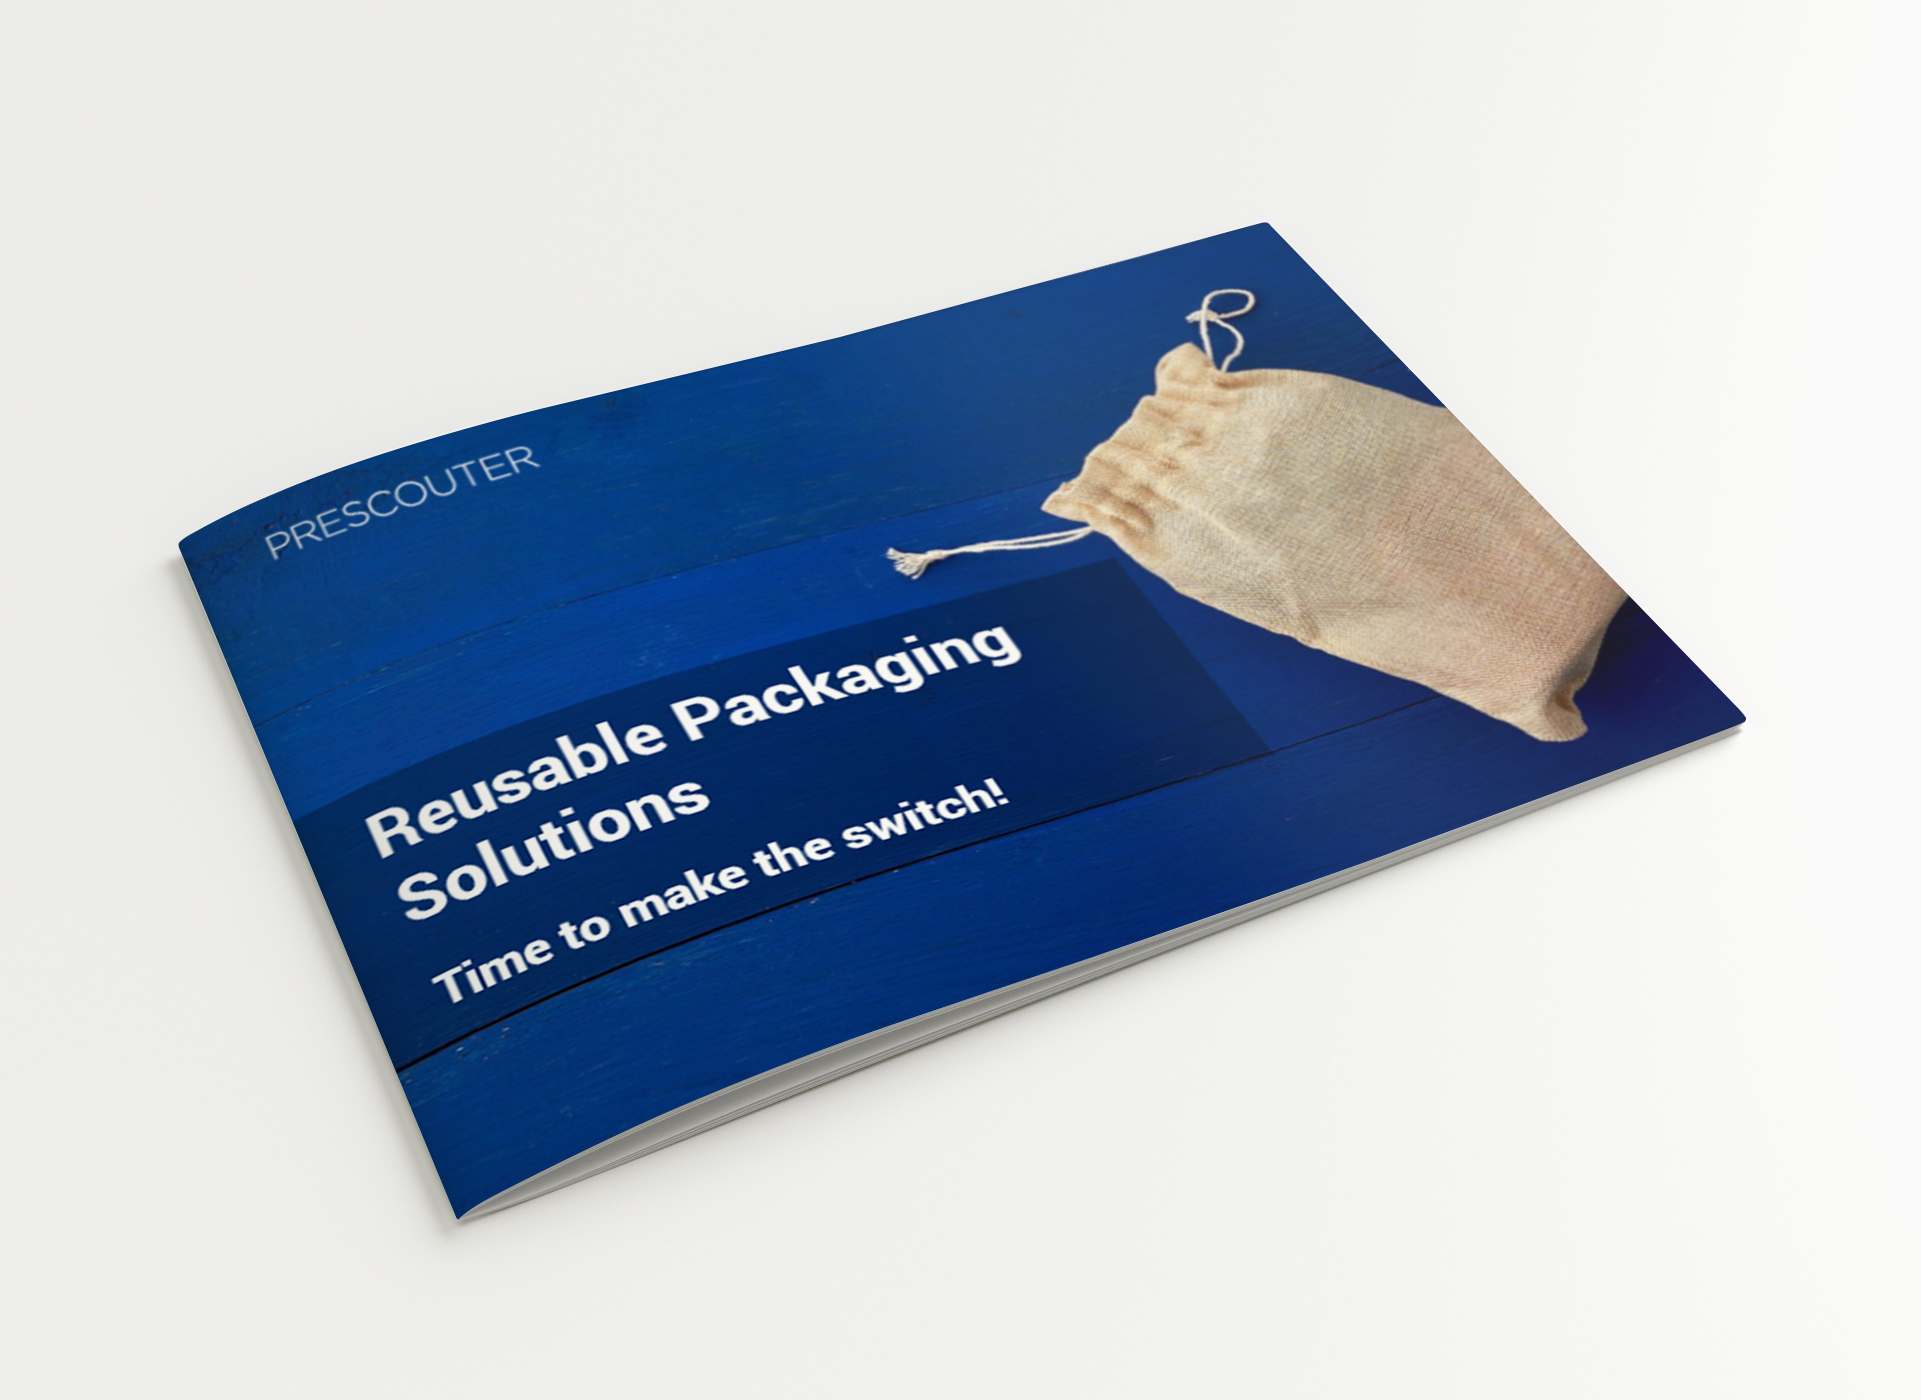 Making the Switch to Reusable Packaging